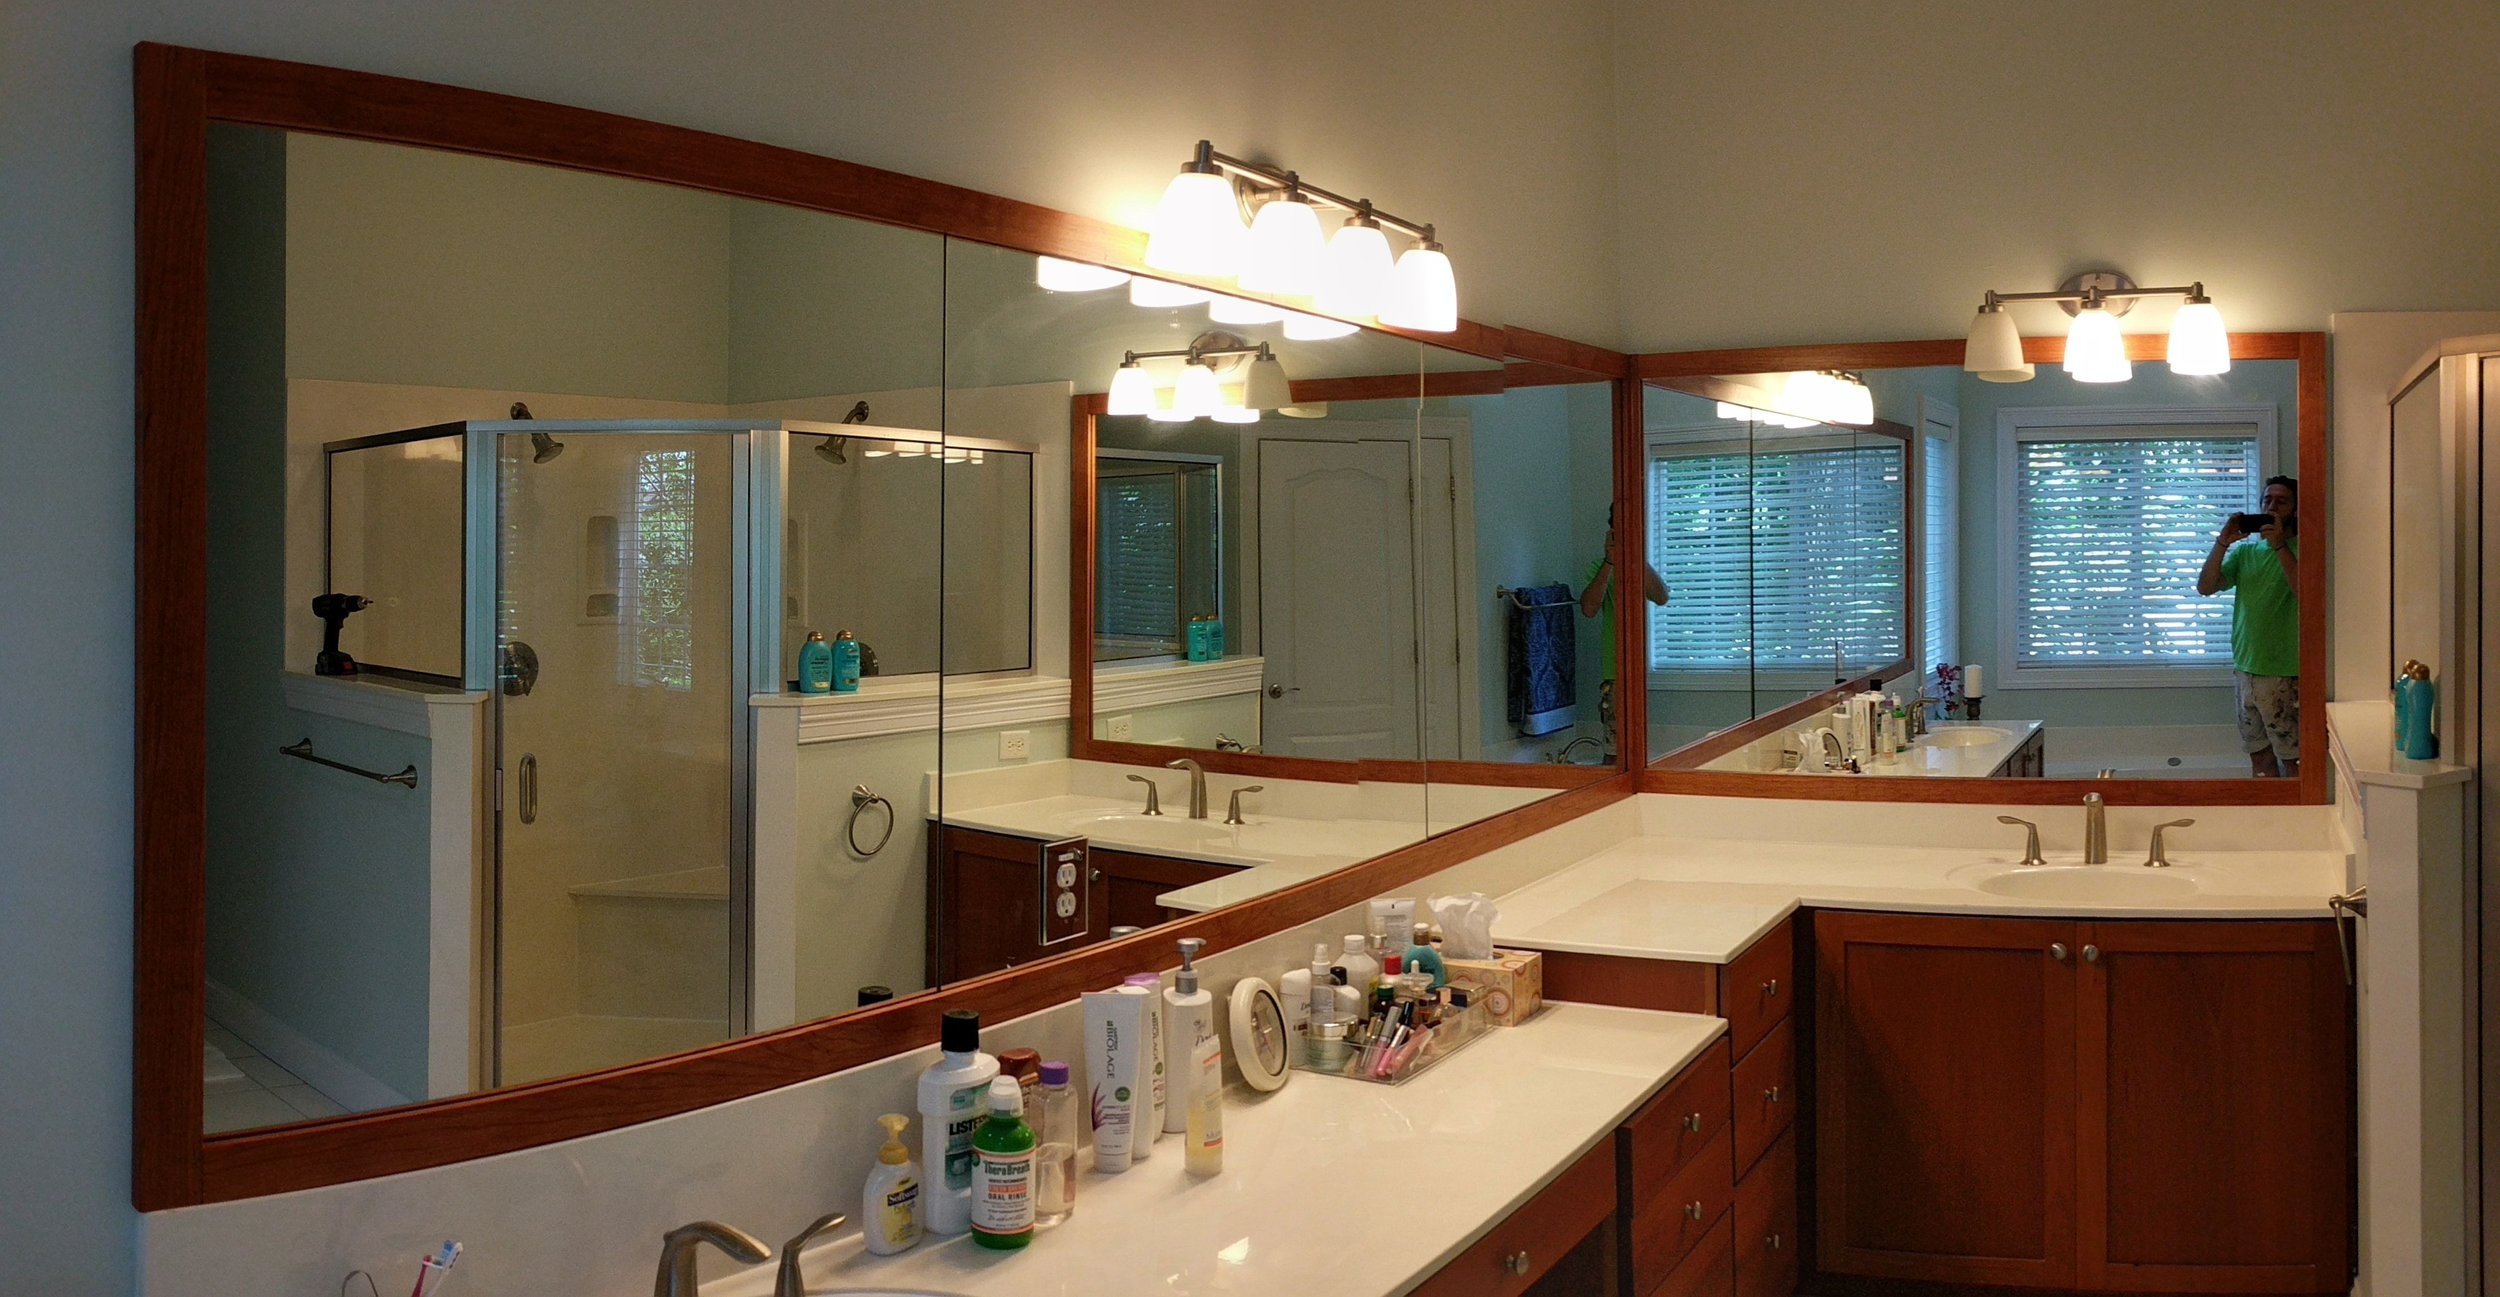 We fabricated and installed this cherry wood trim on the mirrors to match the existing cabinetry.